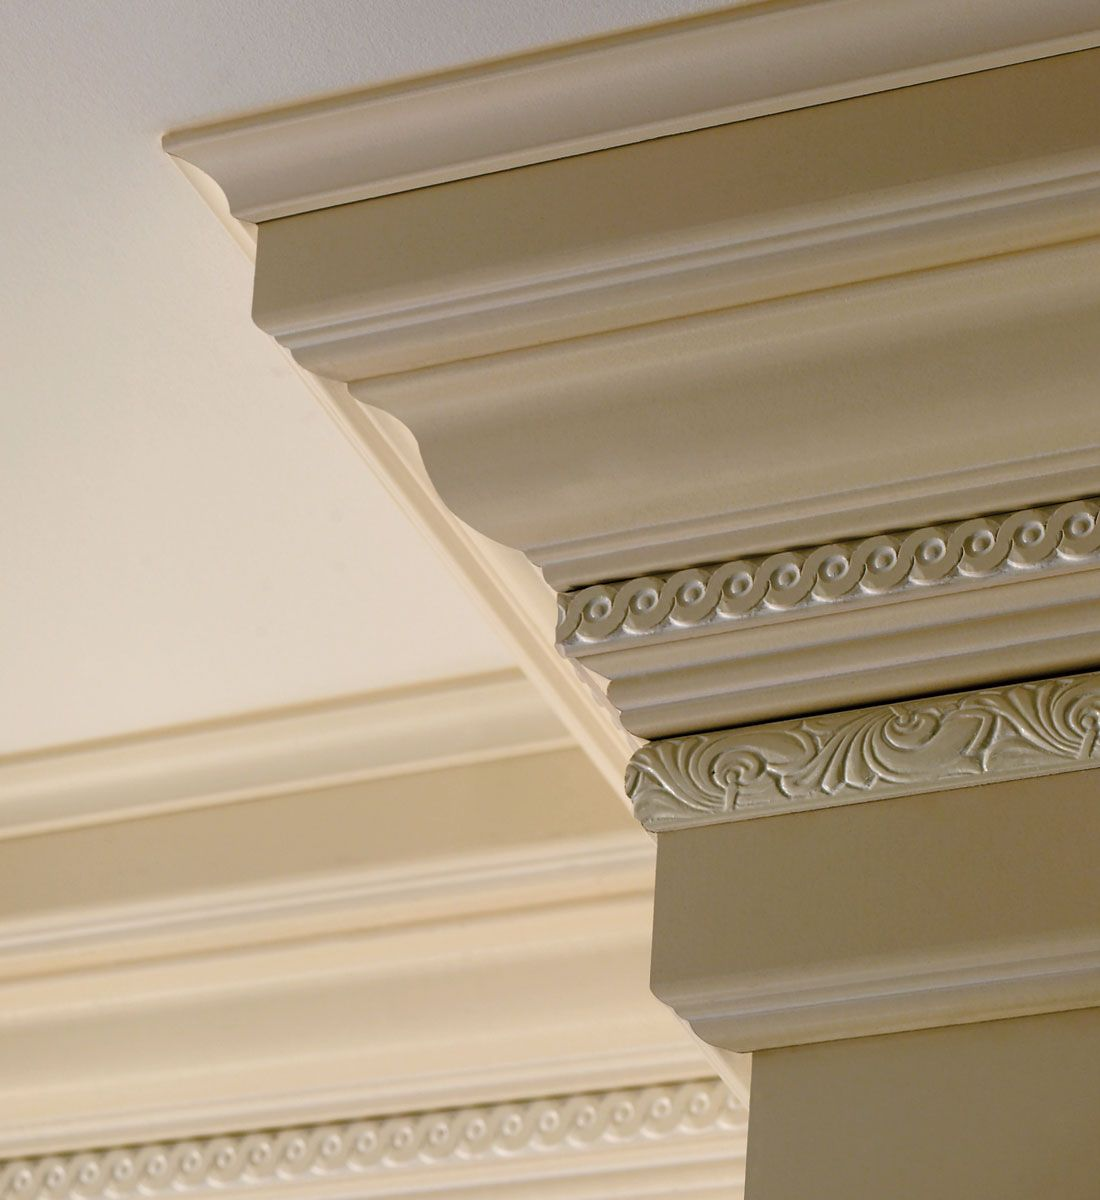 decorative molding kitchen cabinets cleaning wood cabinet moldings and accents waypoint living